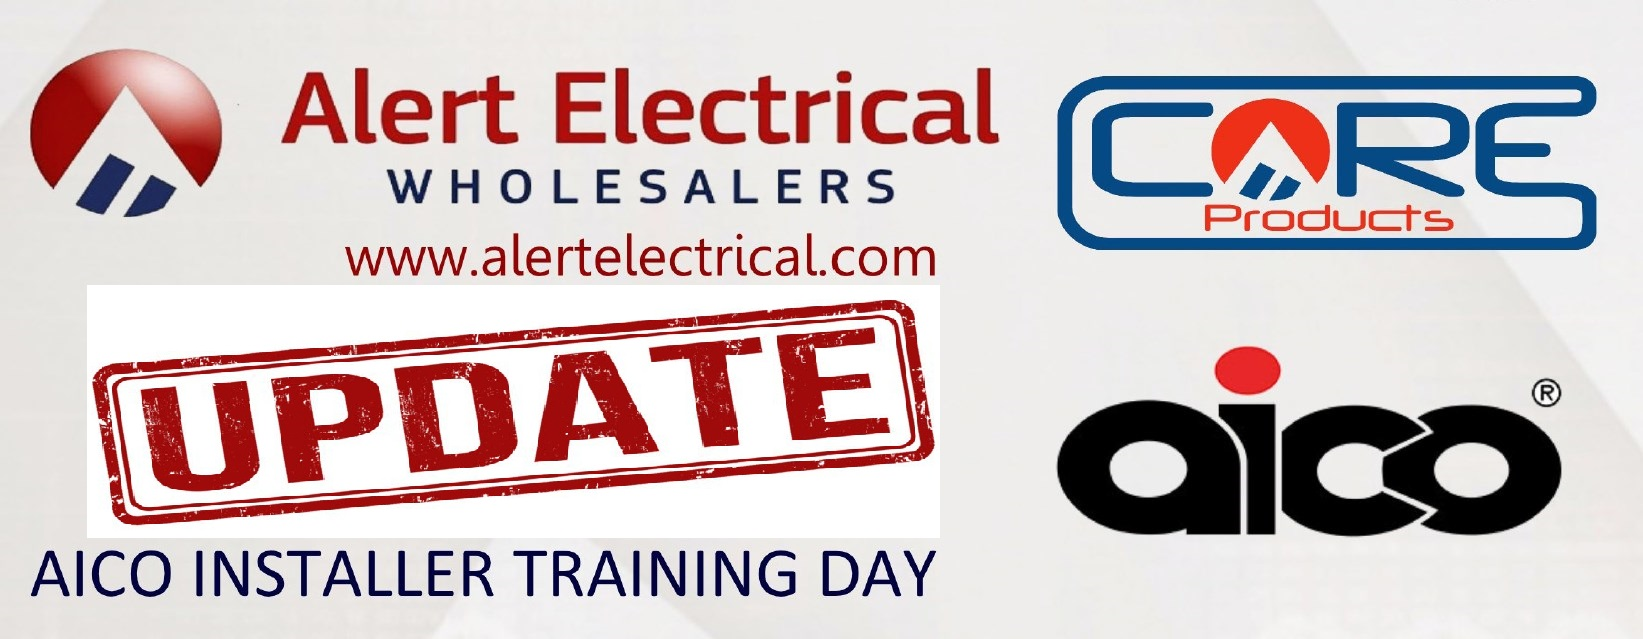 Aico Installer Training Day Update